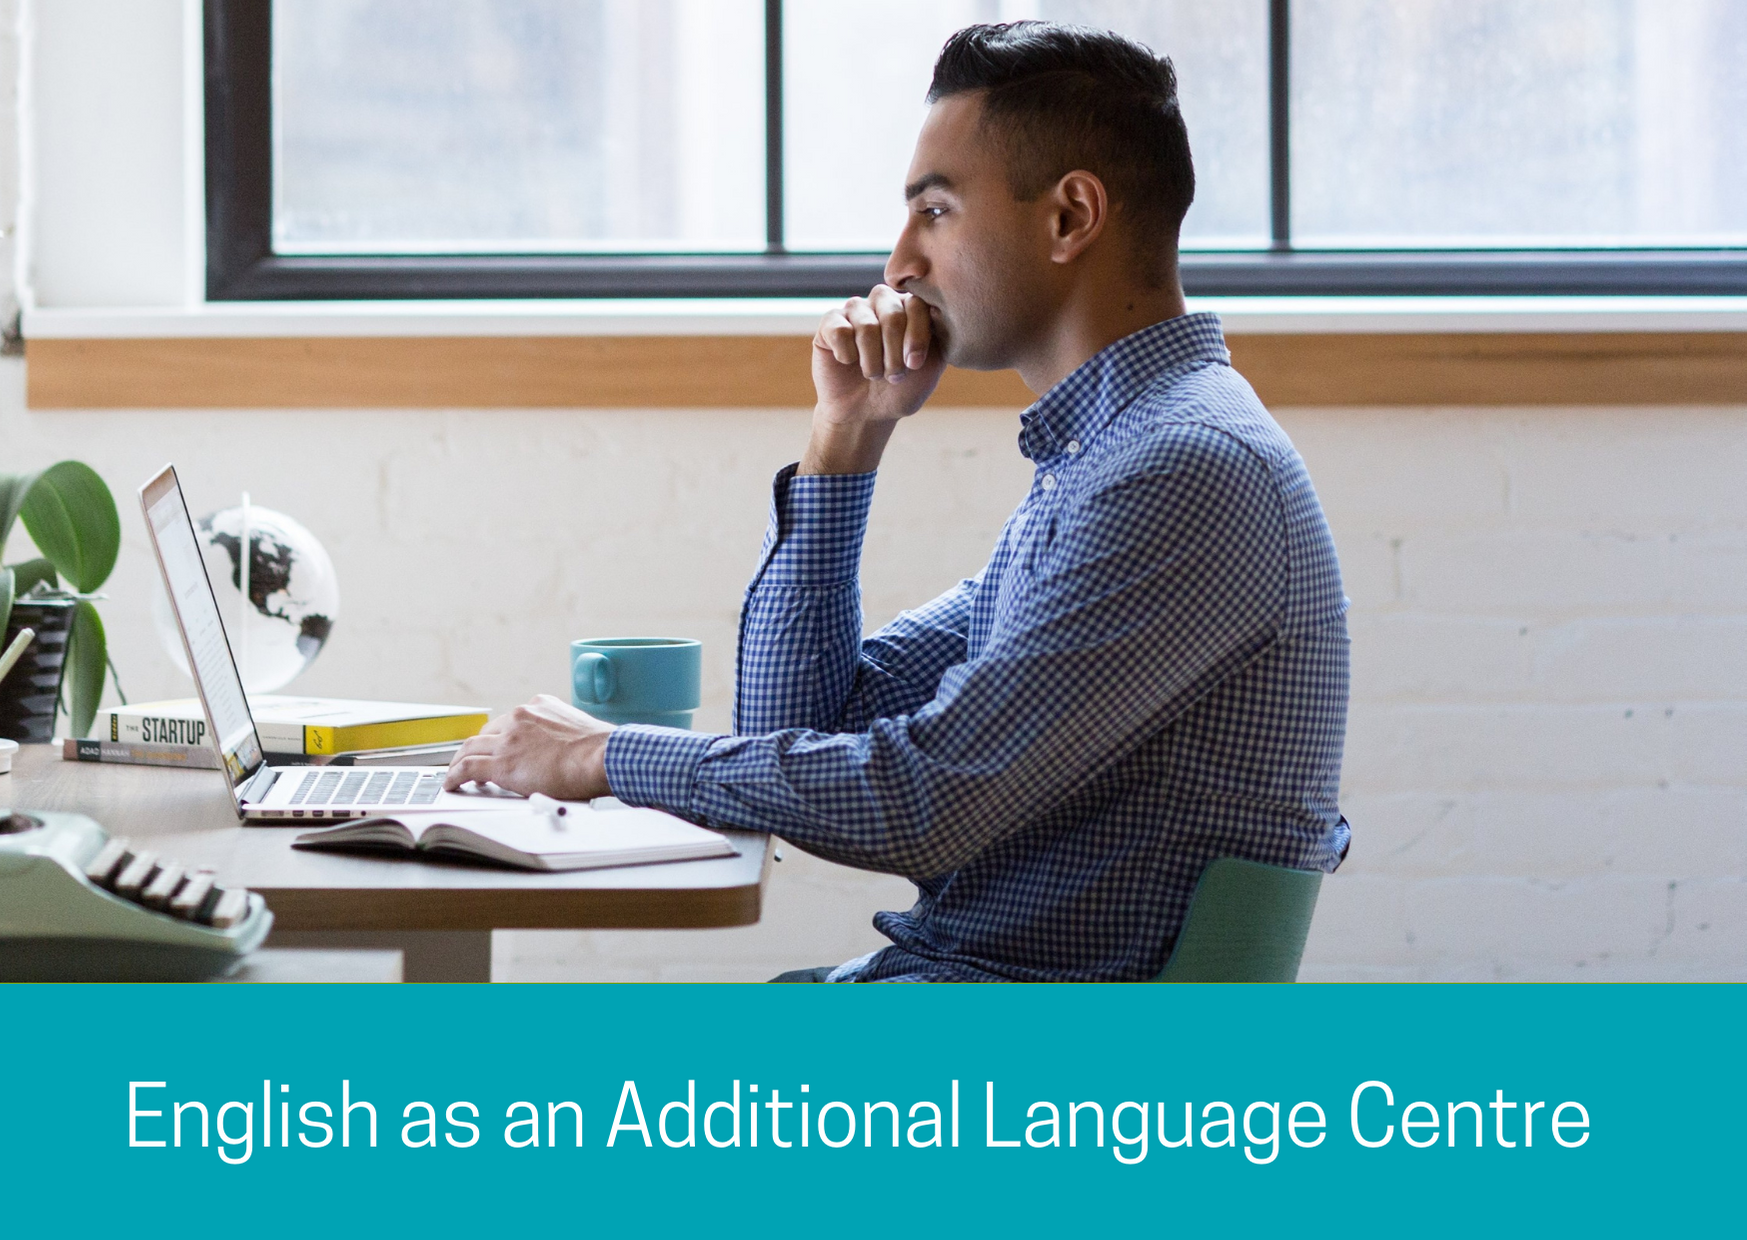 English as an Additional Language Centre